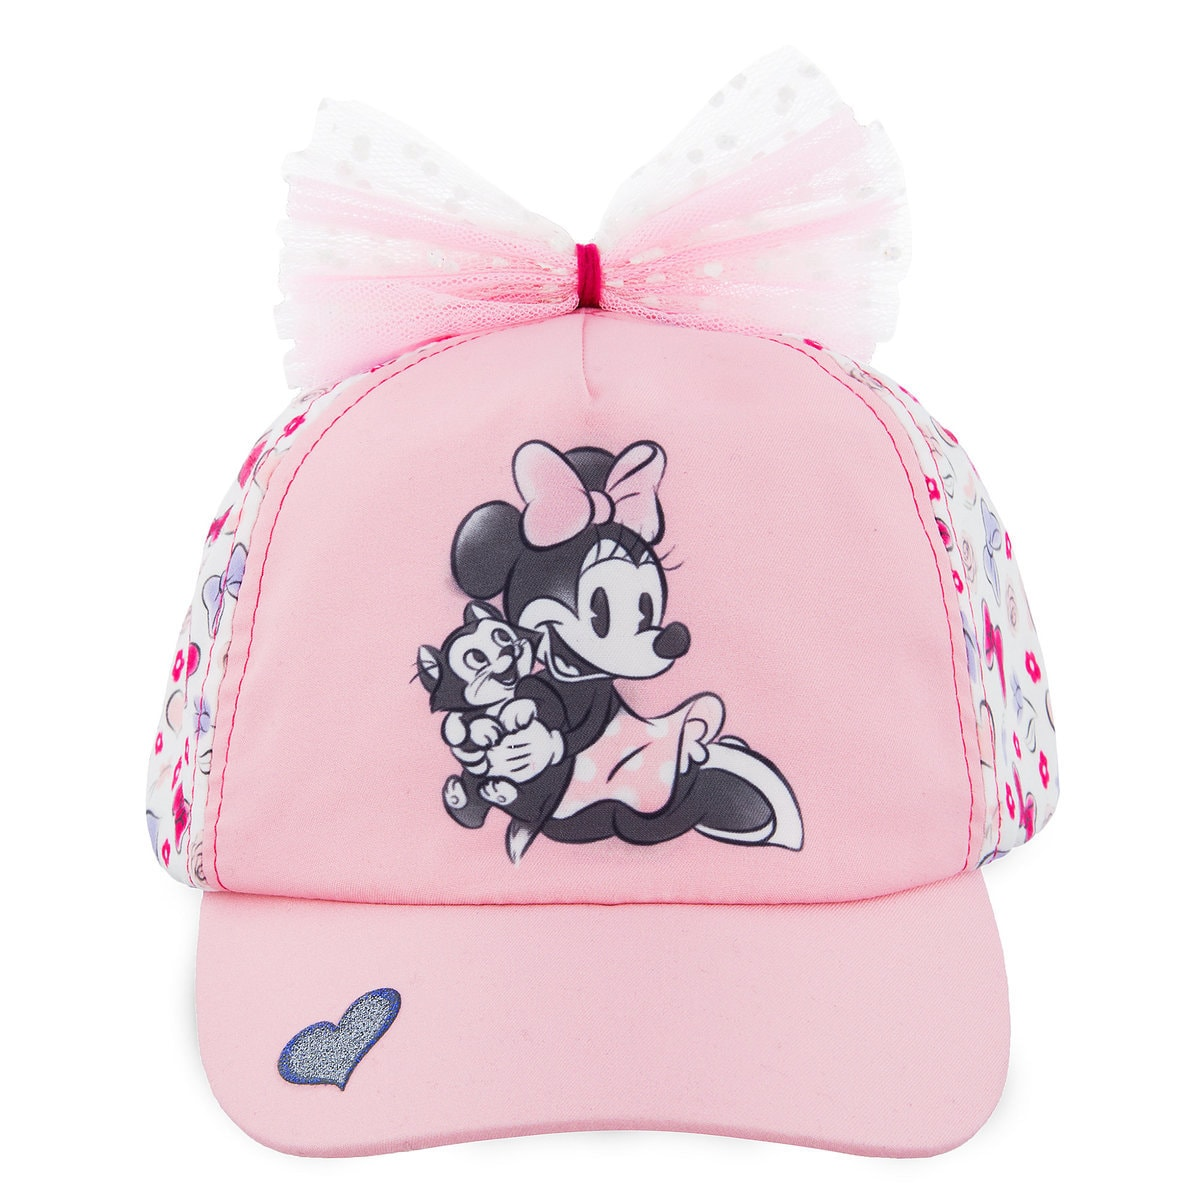 38d2efe408e90 Product Image of Sweet Minnie Mouse Baseball Cap for Baby   1